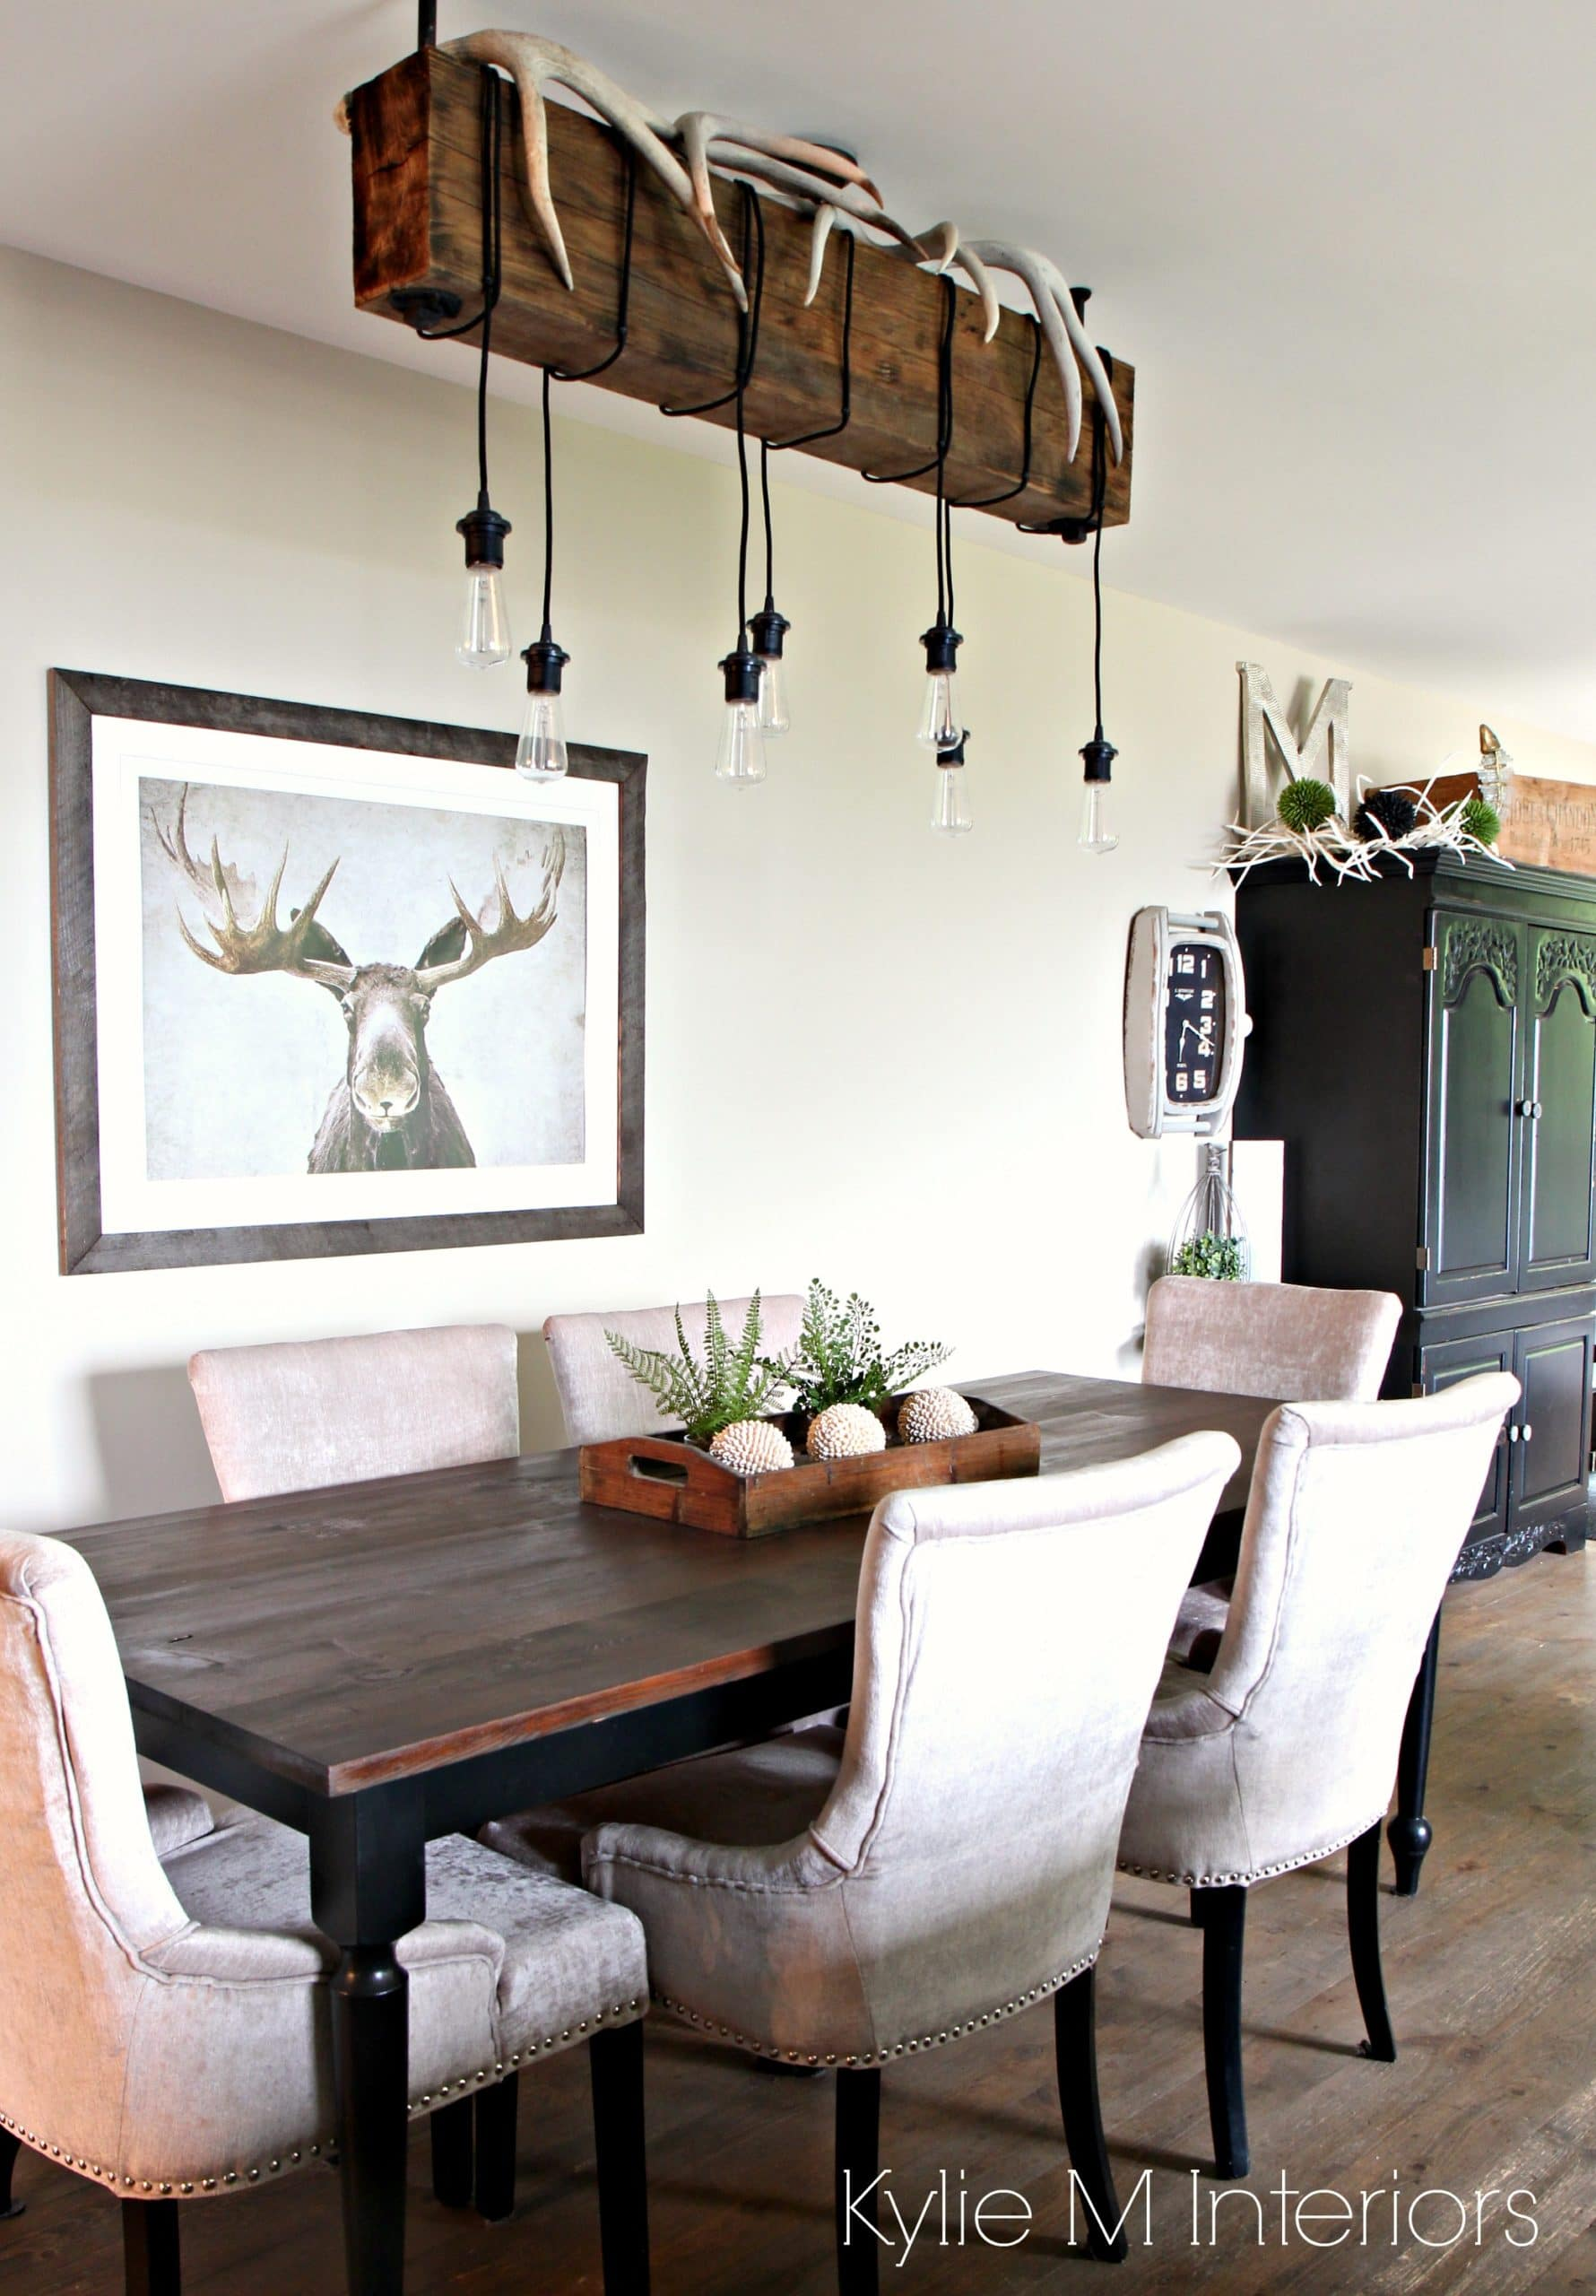 Home Decor For A Hunting Home With Farmhouse Country Style